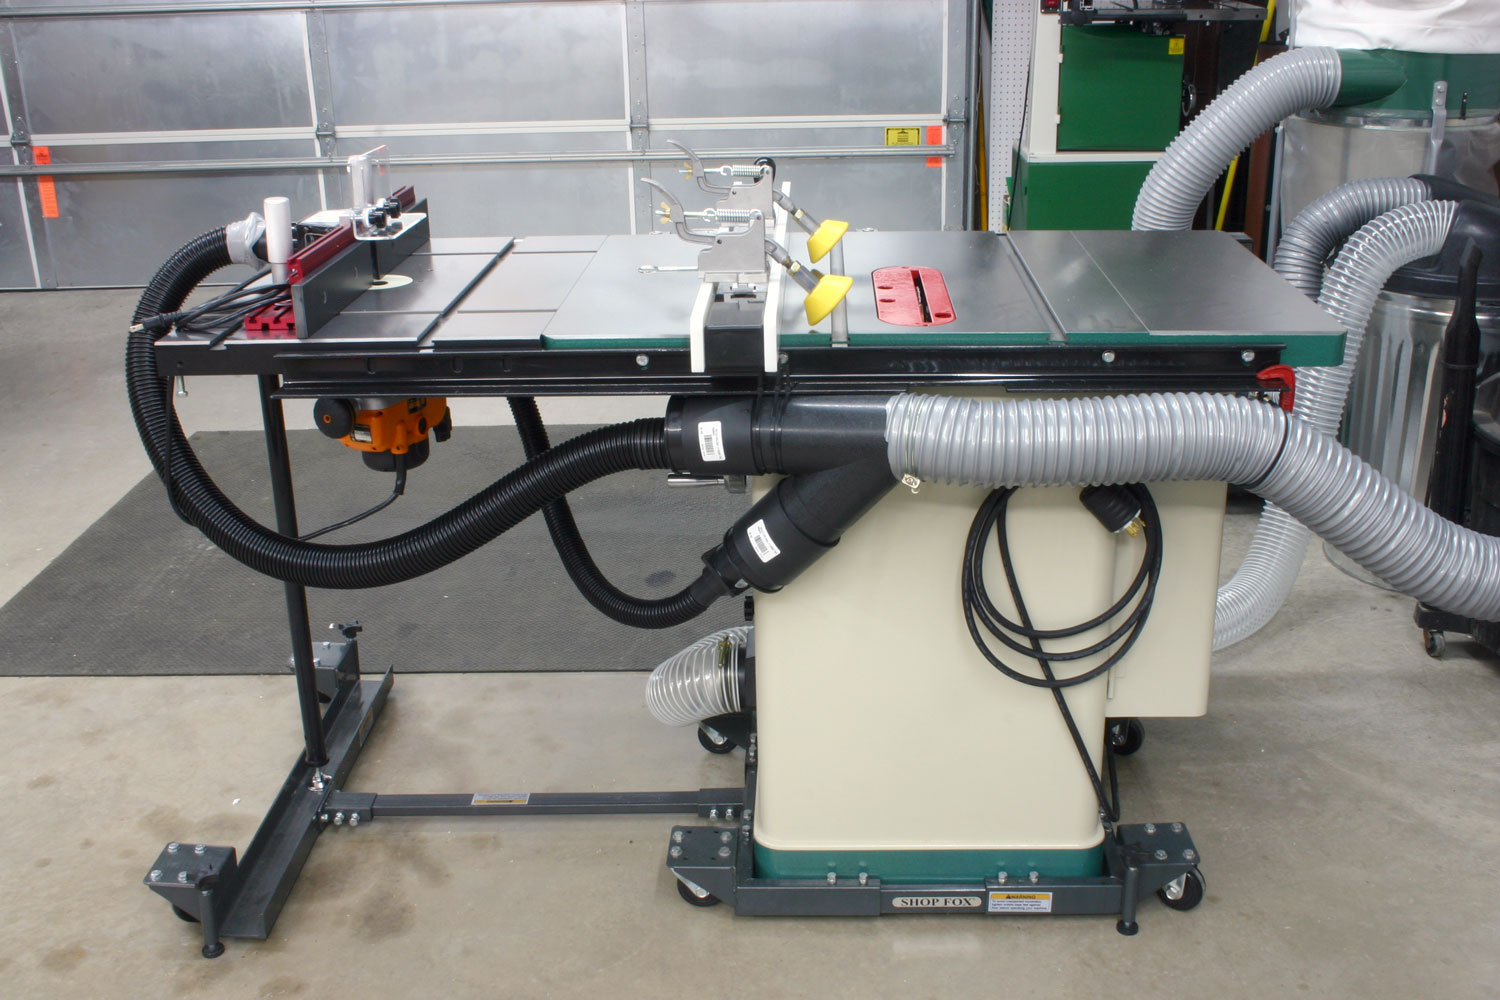 Cast Iron Router Table Extension For A Table Saw By